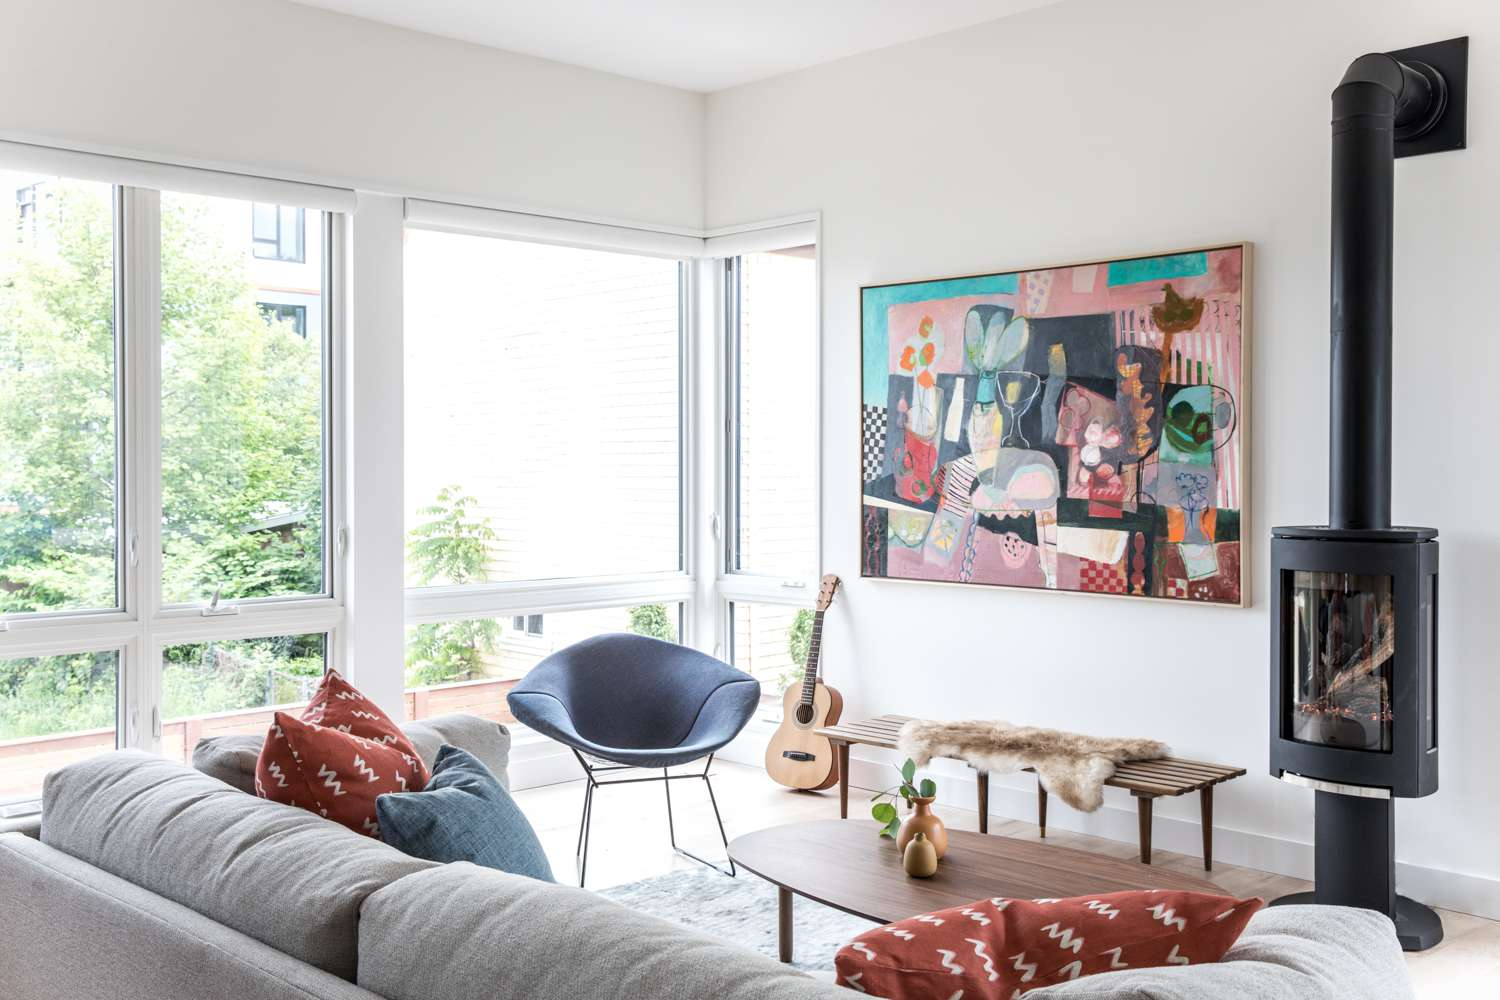 Mid-century styled family room with rounded furniture